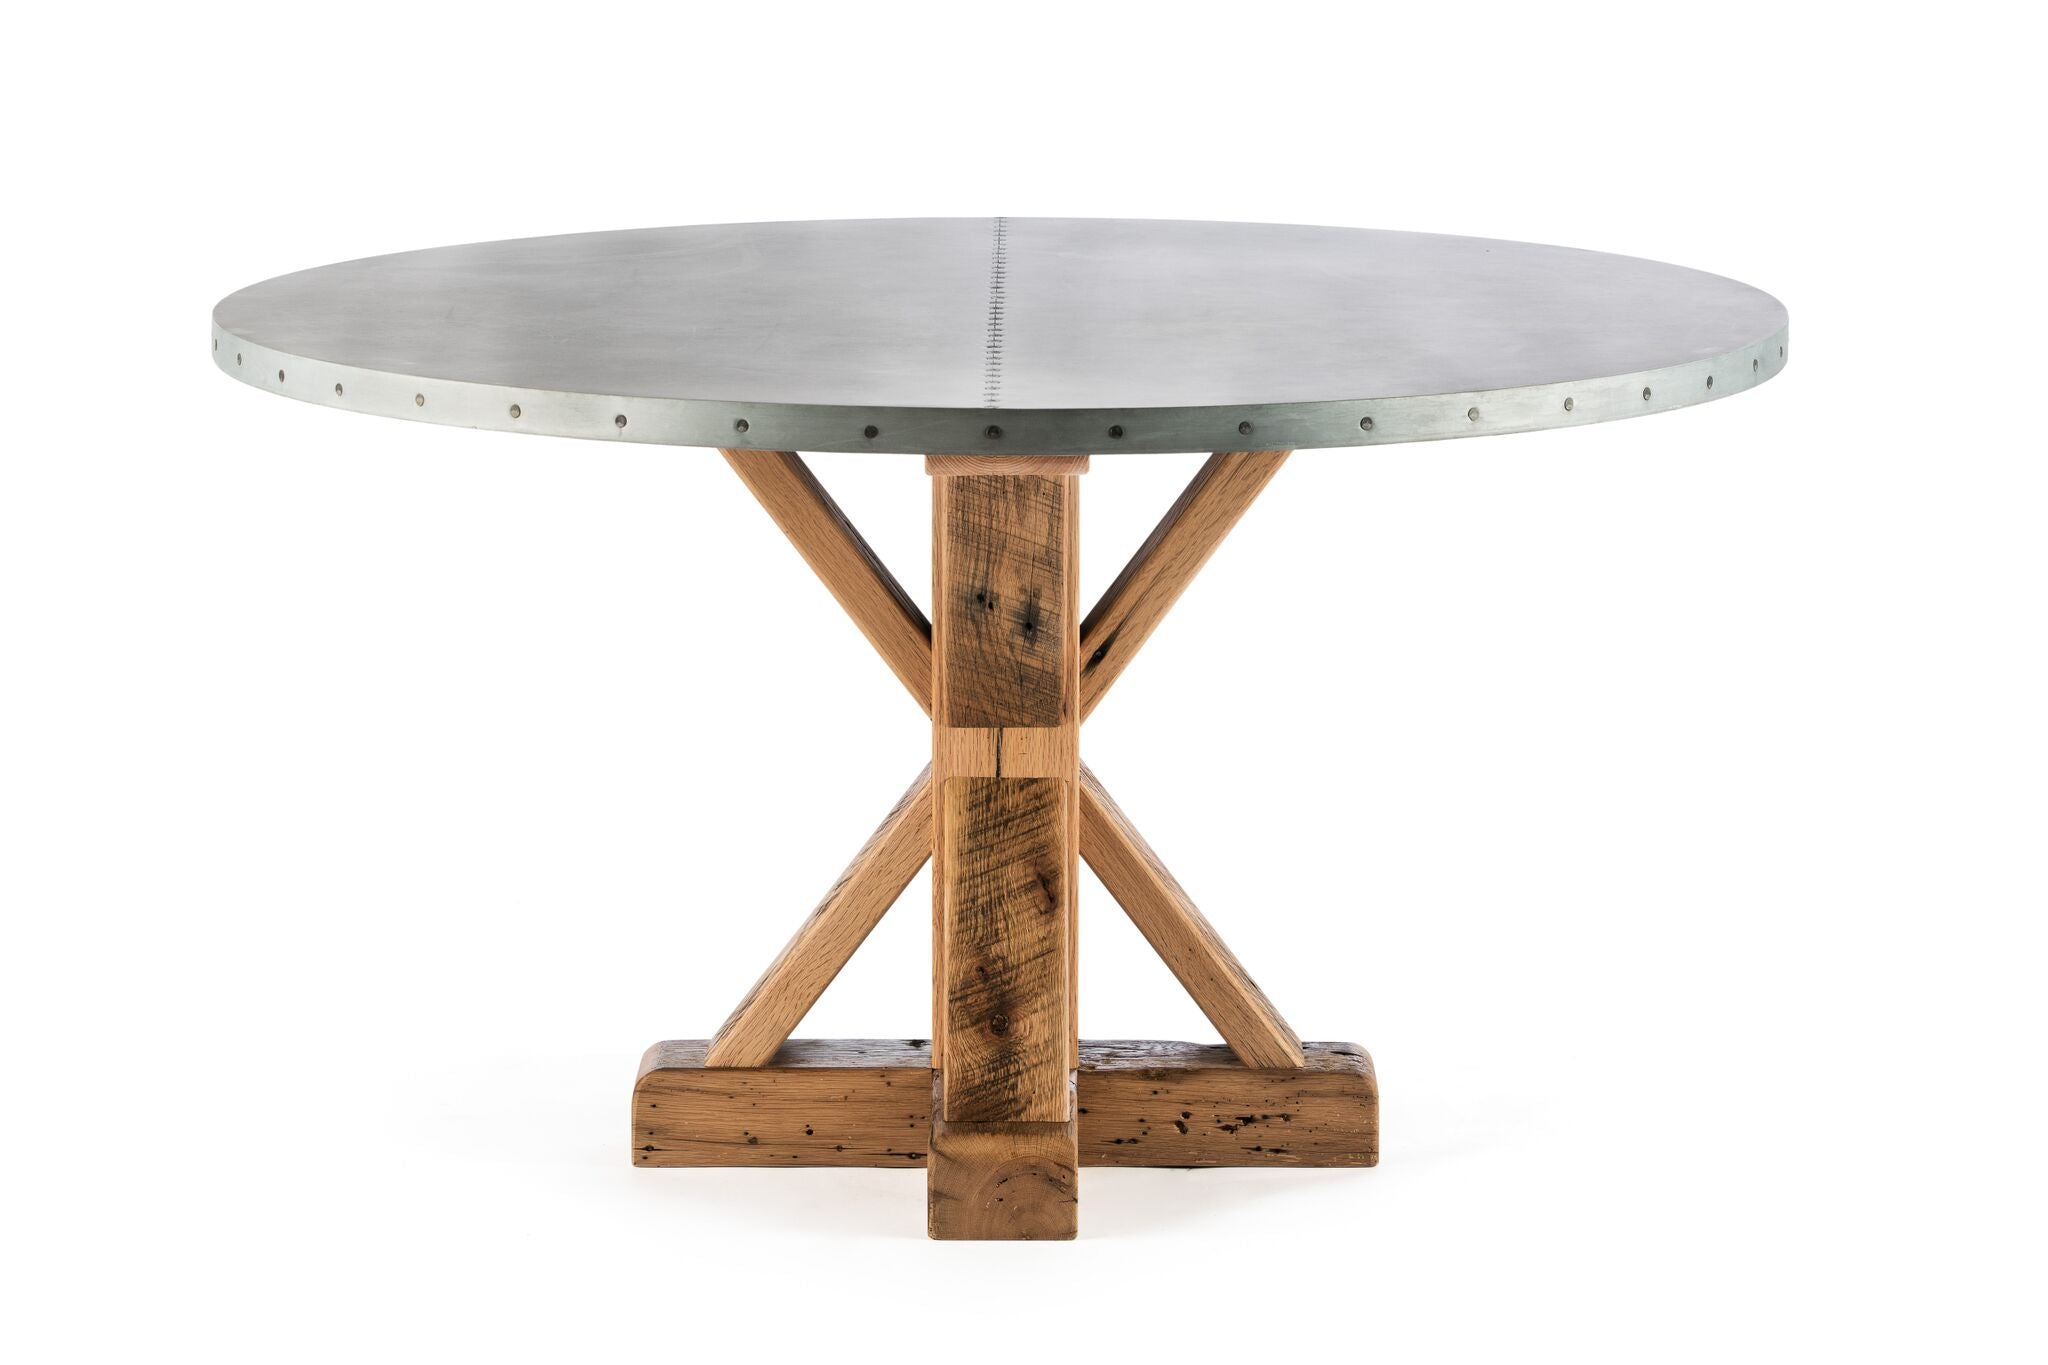 "Zinc Round Tables | French Trestle Table | CLASSIC | Black | CUSTOM SIZE D 60 H 30 | 1.5"" Standard 